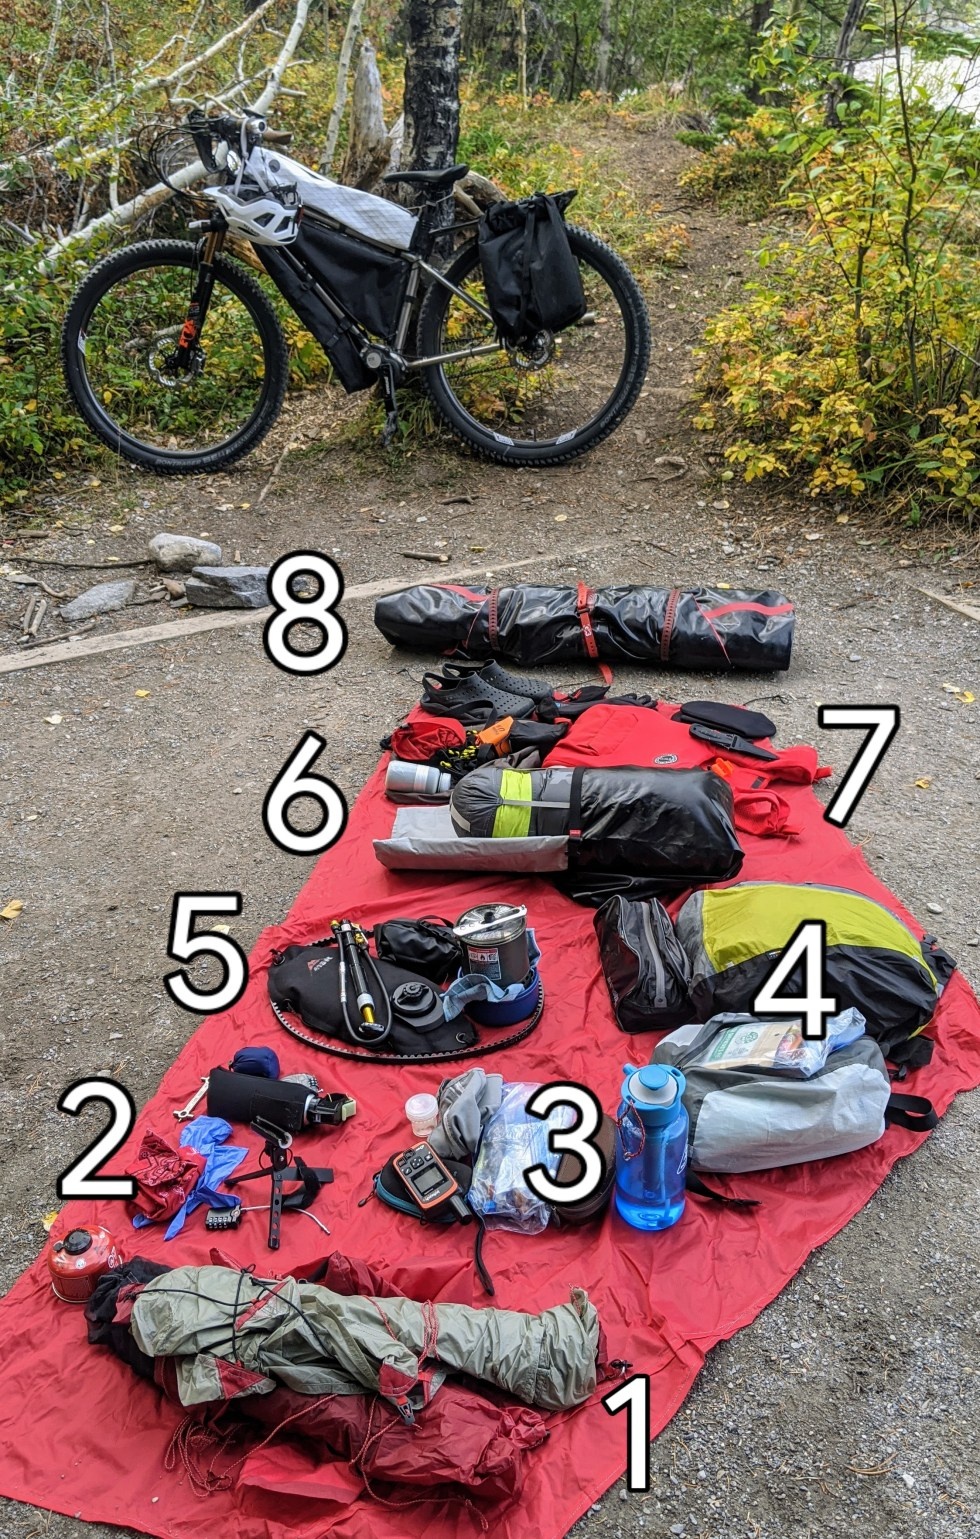 All gear laid out on a DIY tent footprint.